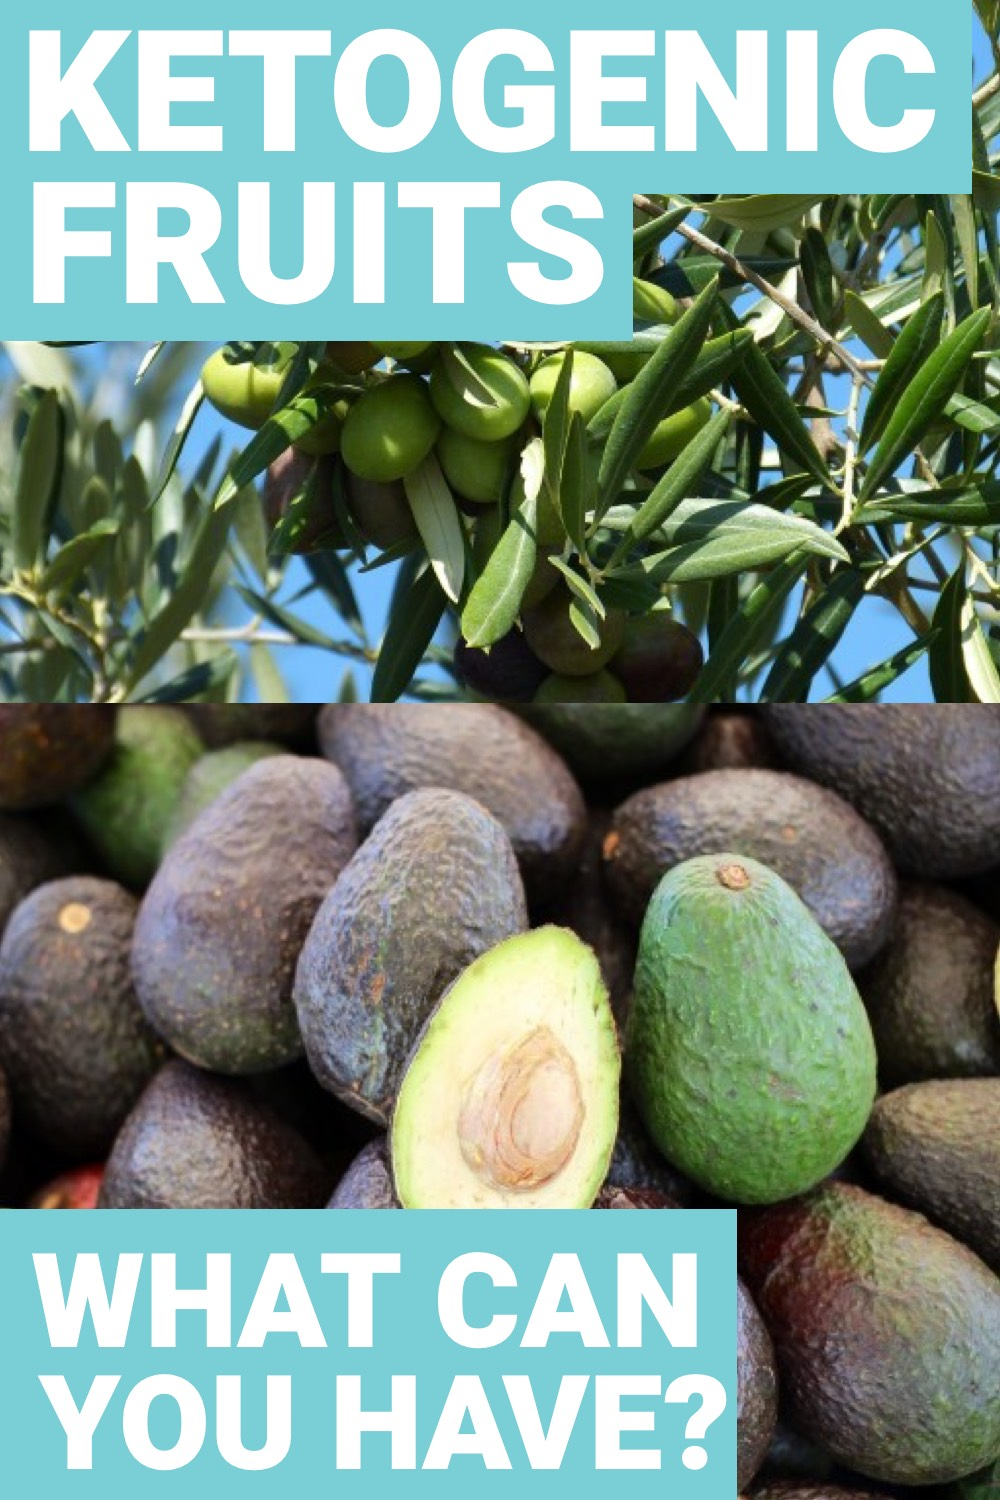 If you're doing keto and love fruits then you'll want to know what fruits you can eat on the ketogenic diet. Here are some of the fruits you can keep around.